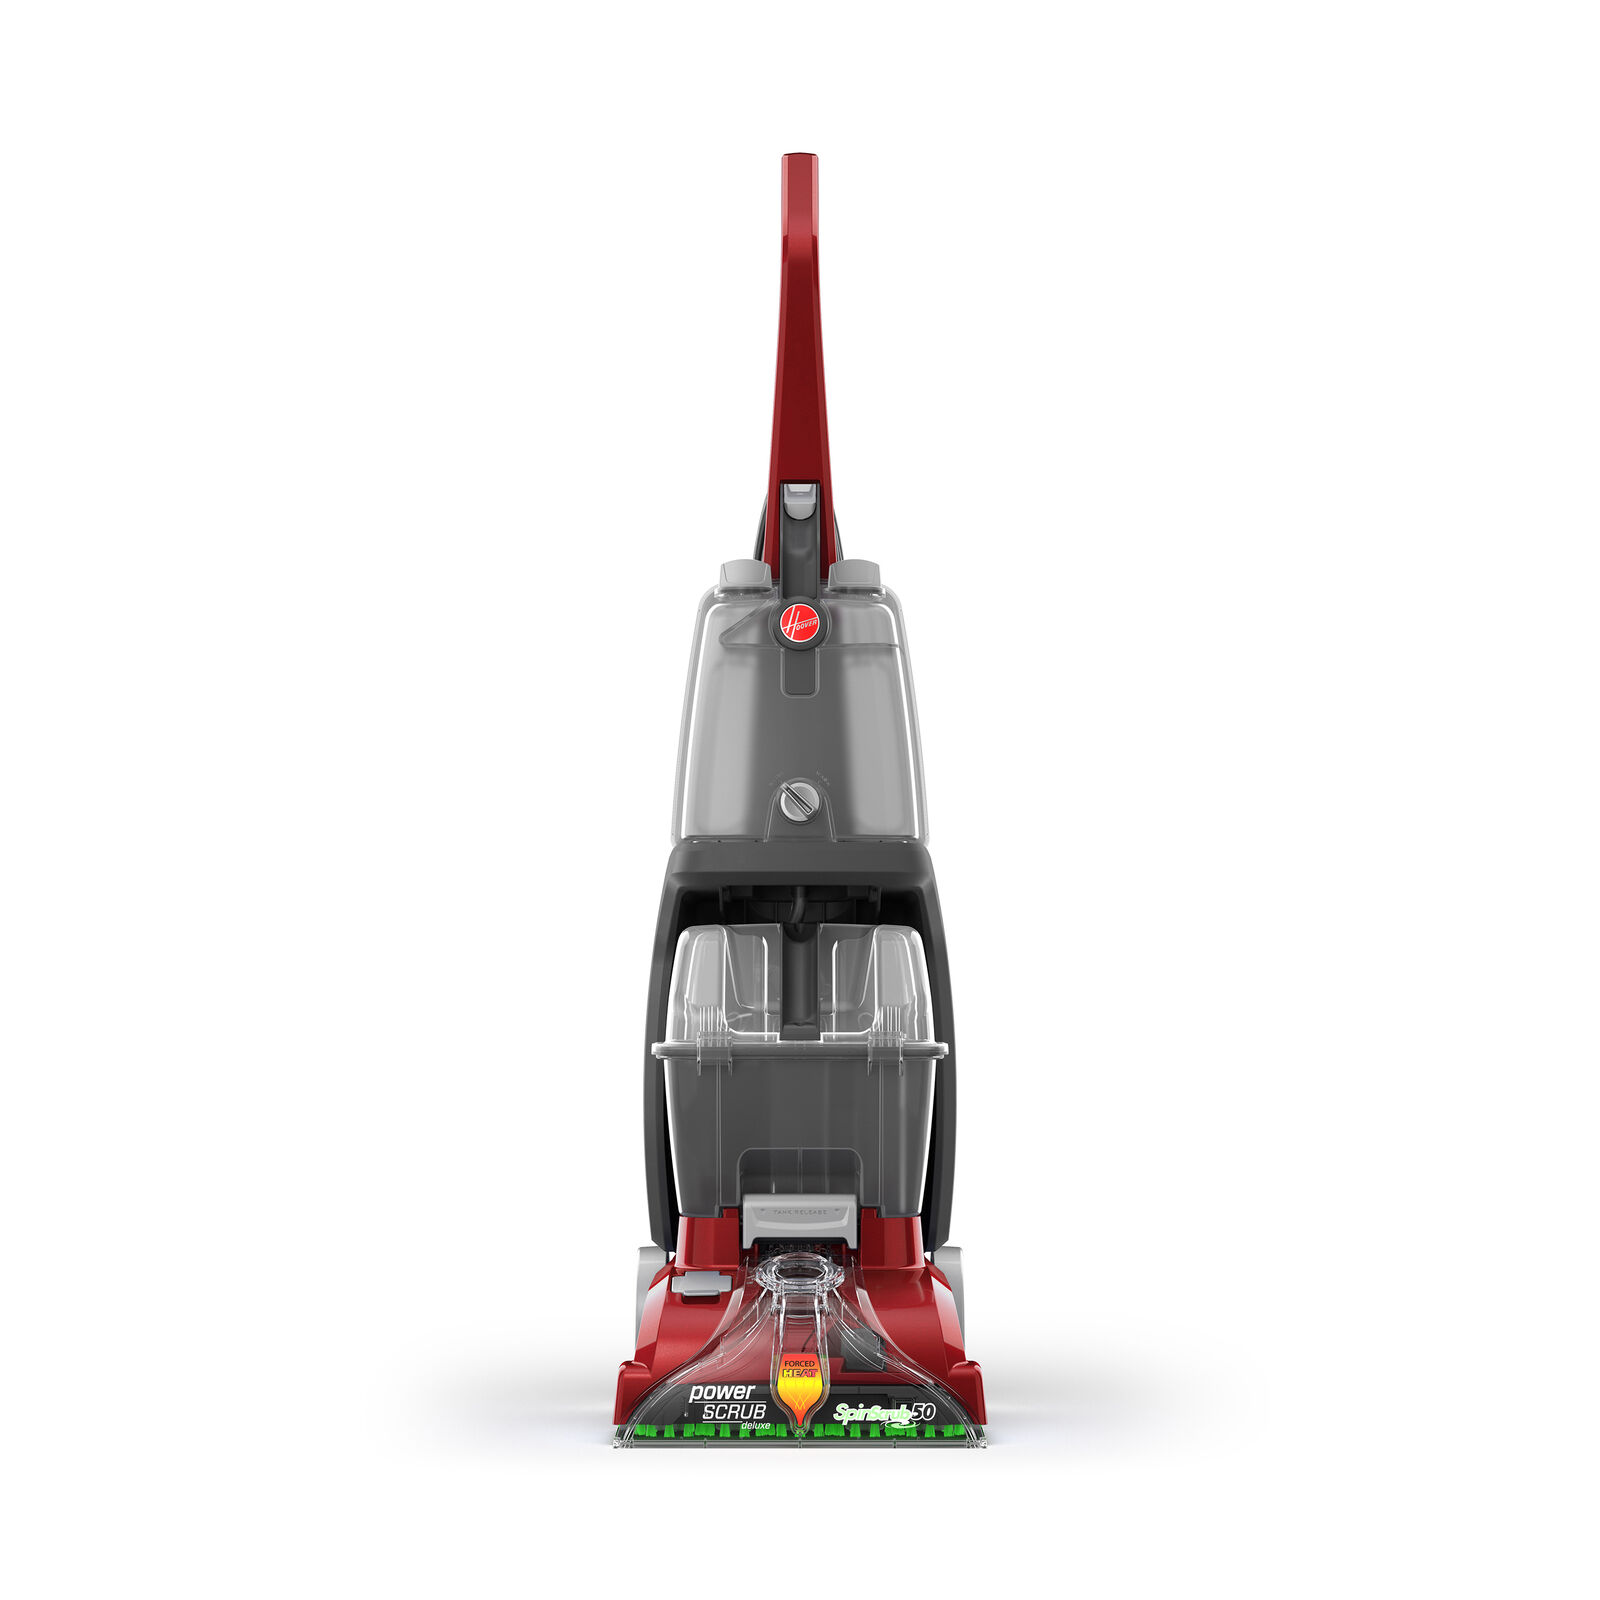 Hoover Power Scrub Multi Floor Upright Cleaner and Deluxe Ca